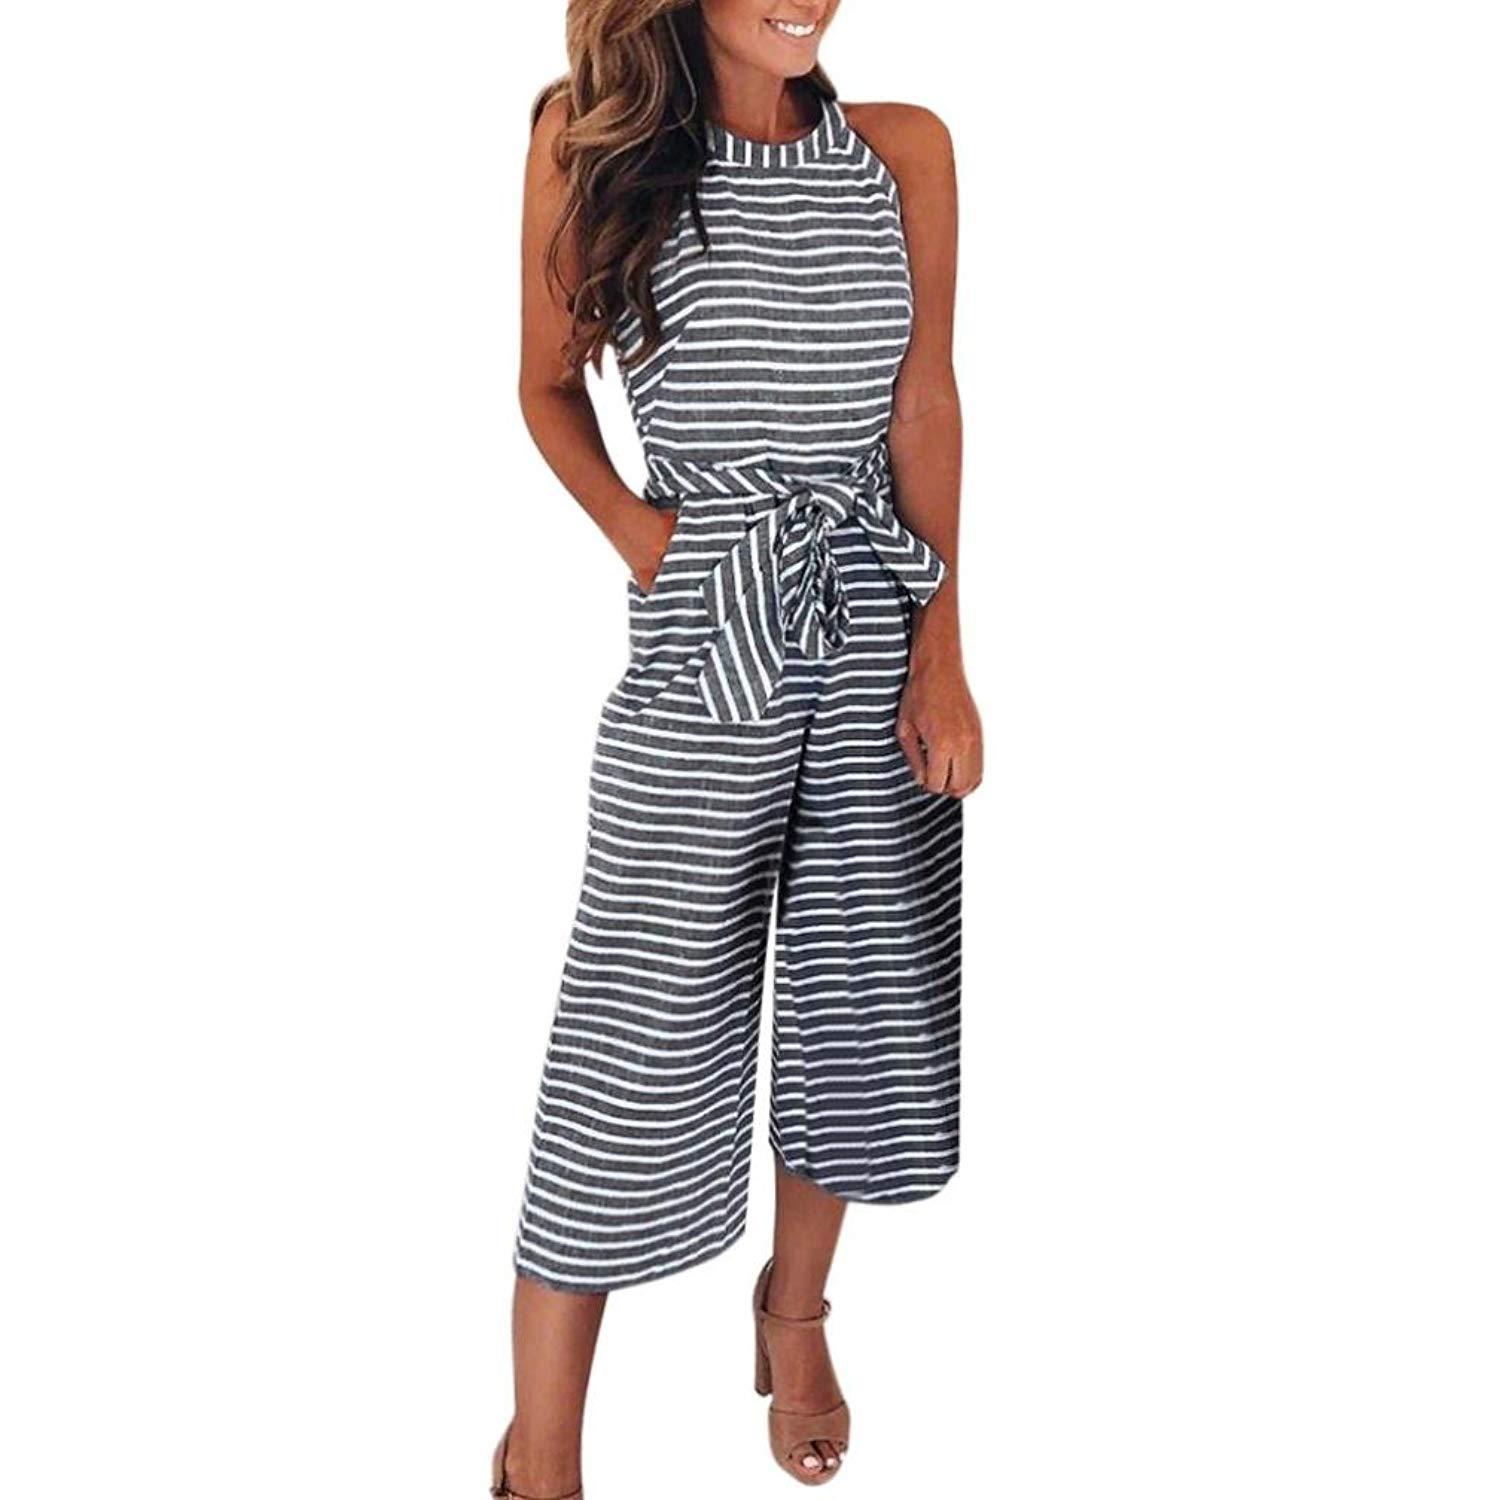 cdfe7299034b Get Quotations · Women Sexy Spaghetti Strap Striped Long Pants Jumpsuit  Romper Sleeveless Ladies Outfits